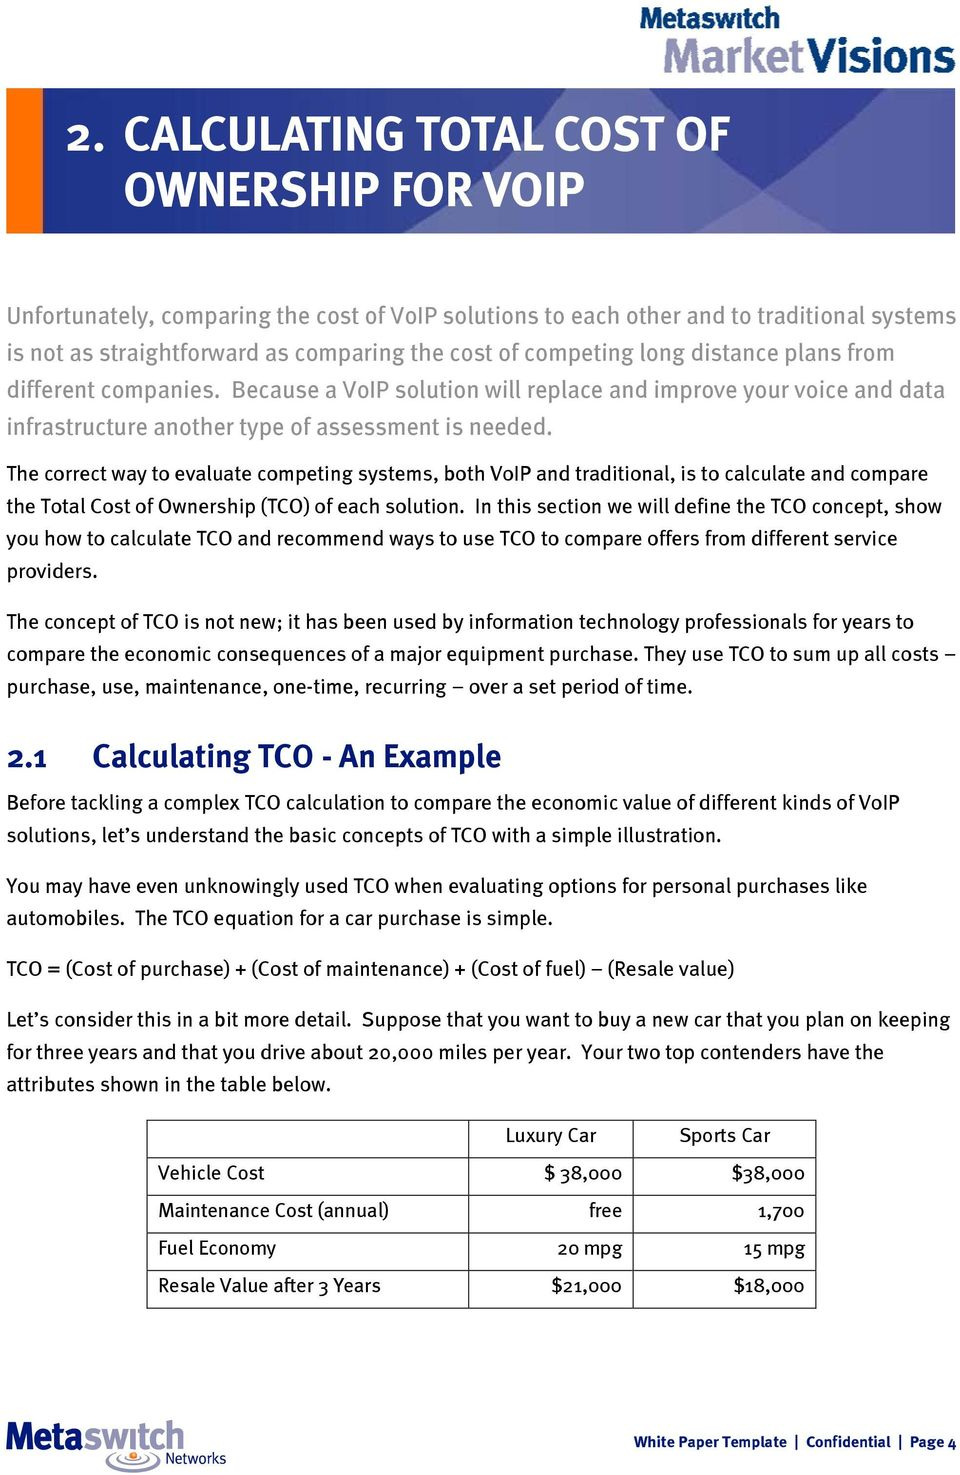 The correct way to evaluate competing systems, both VoIP and traditional, is to calculate and compare the Total Cost of Ownership (TCO) of each solution.